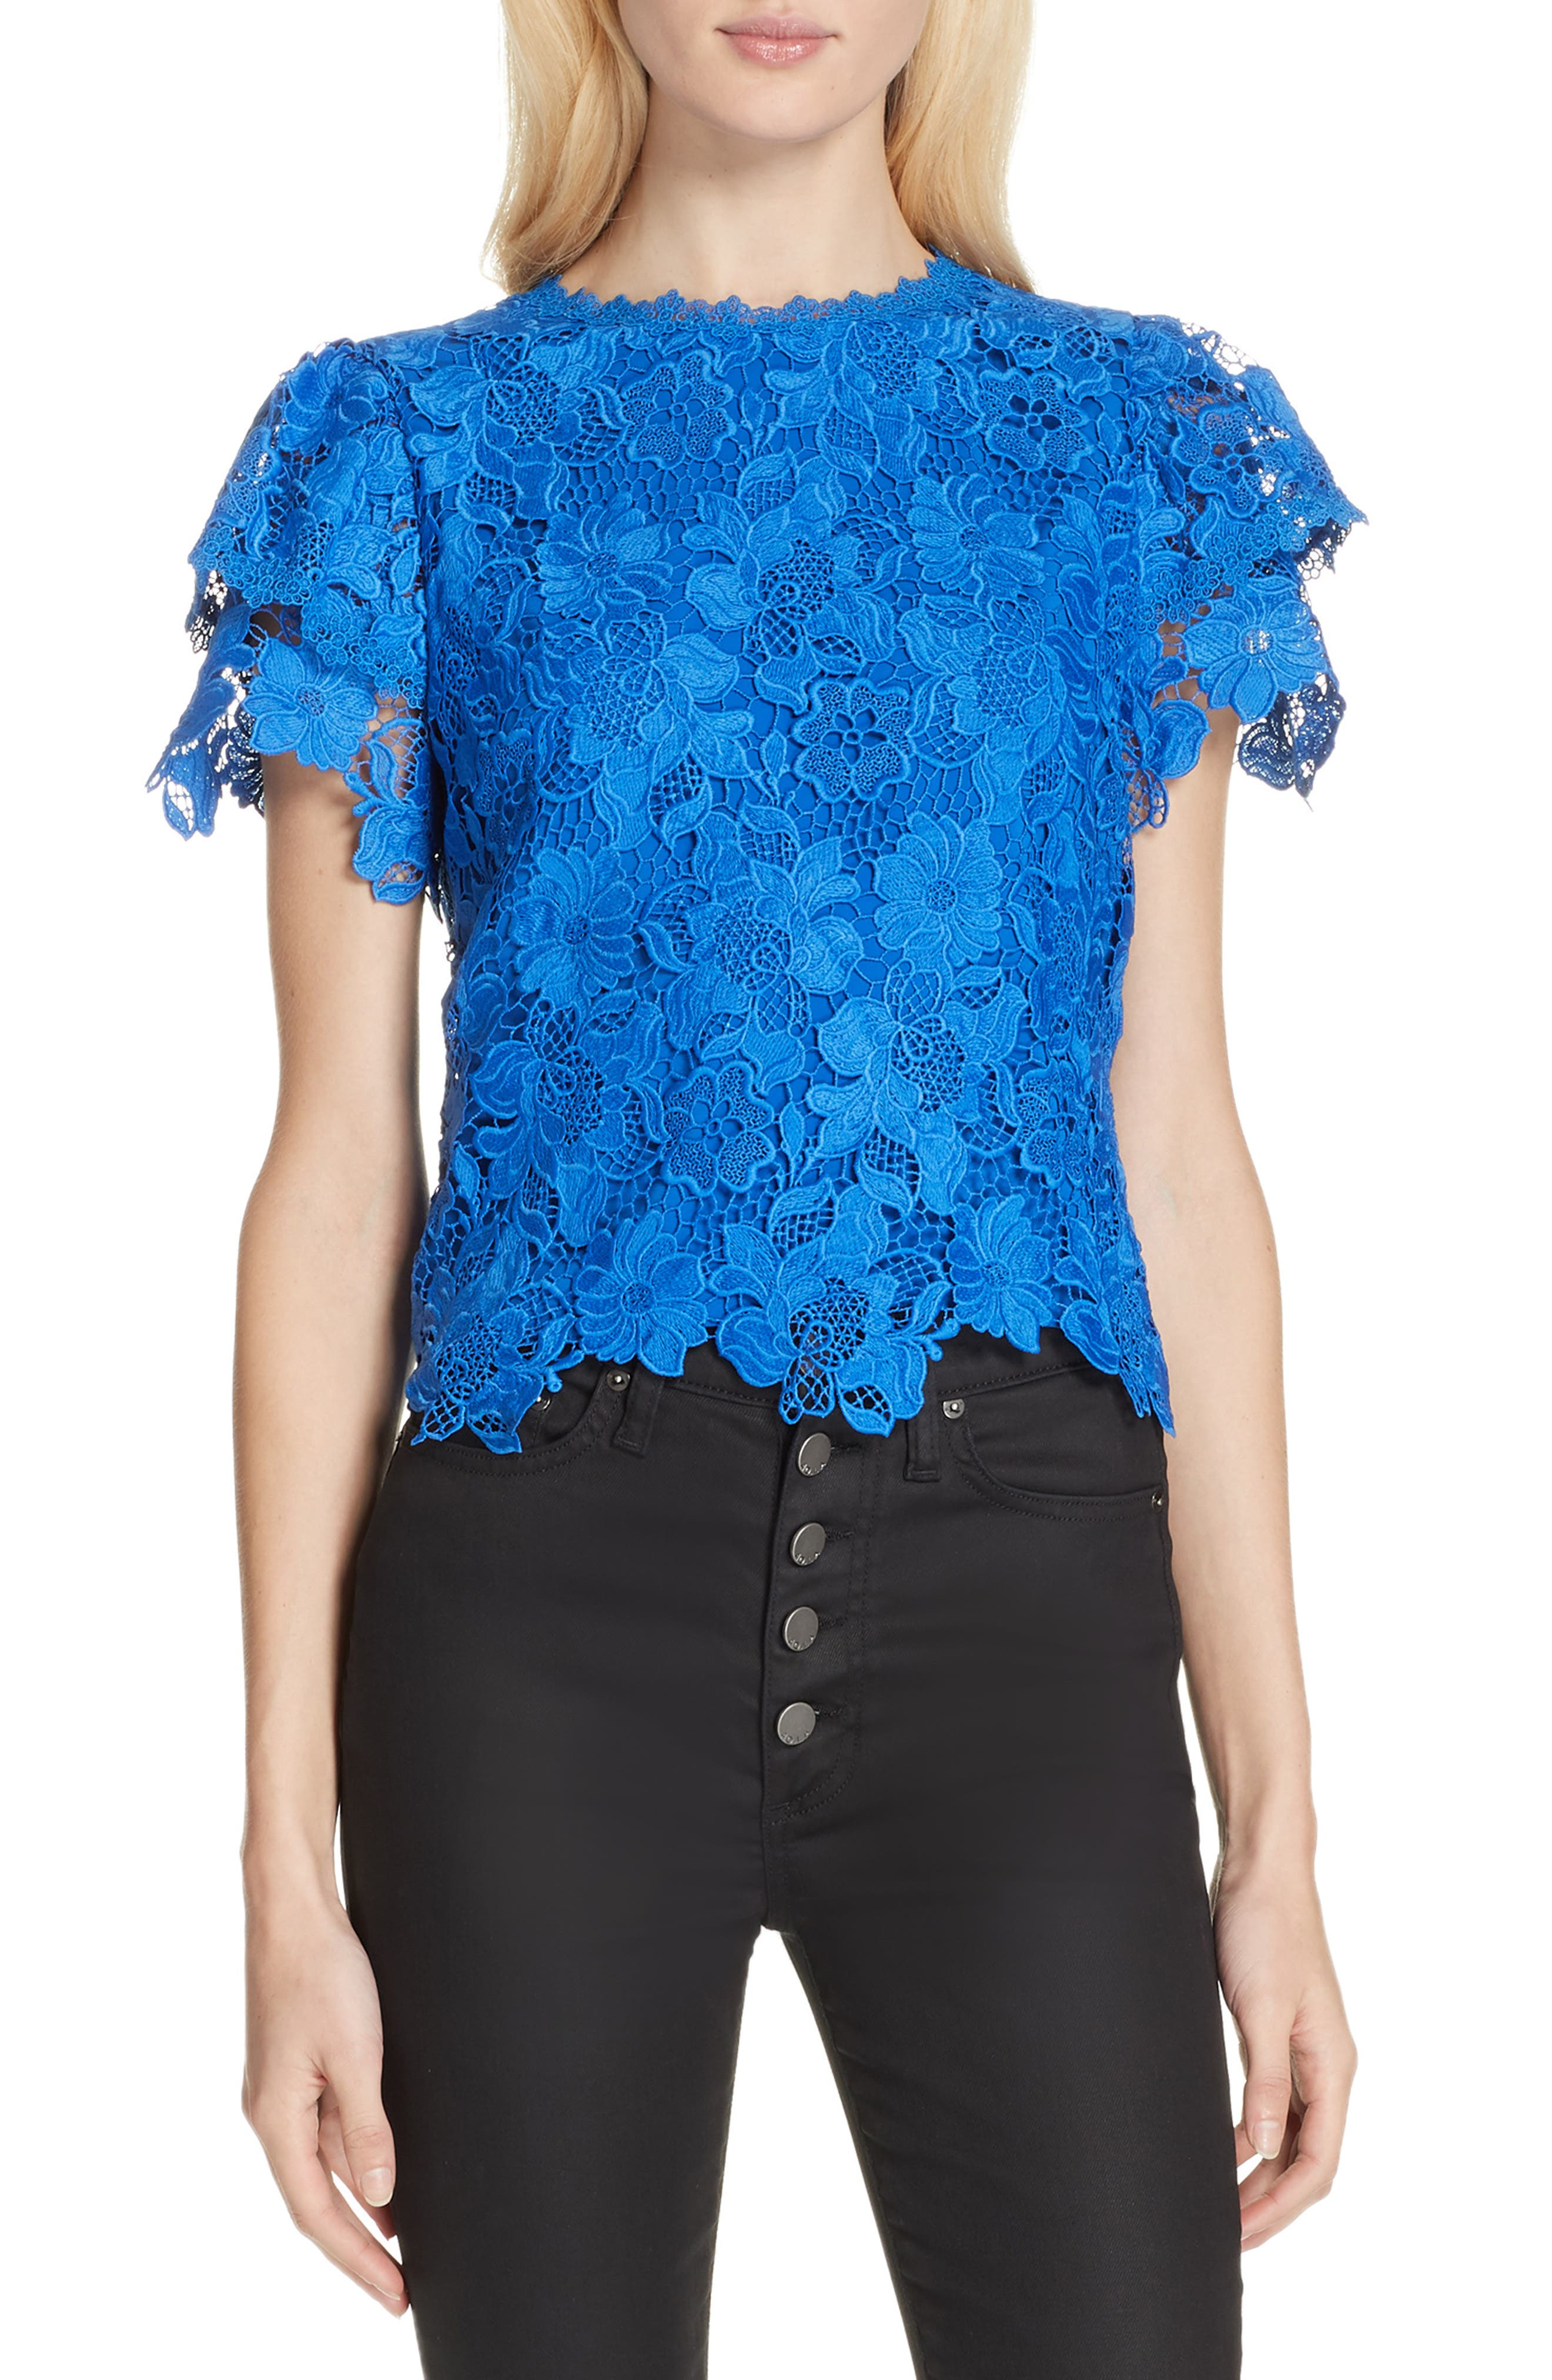 Glady Lace Crop Blouse by Alice + Olivia